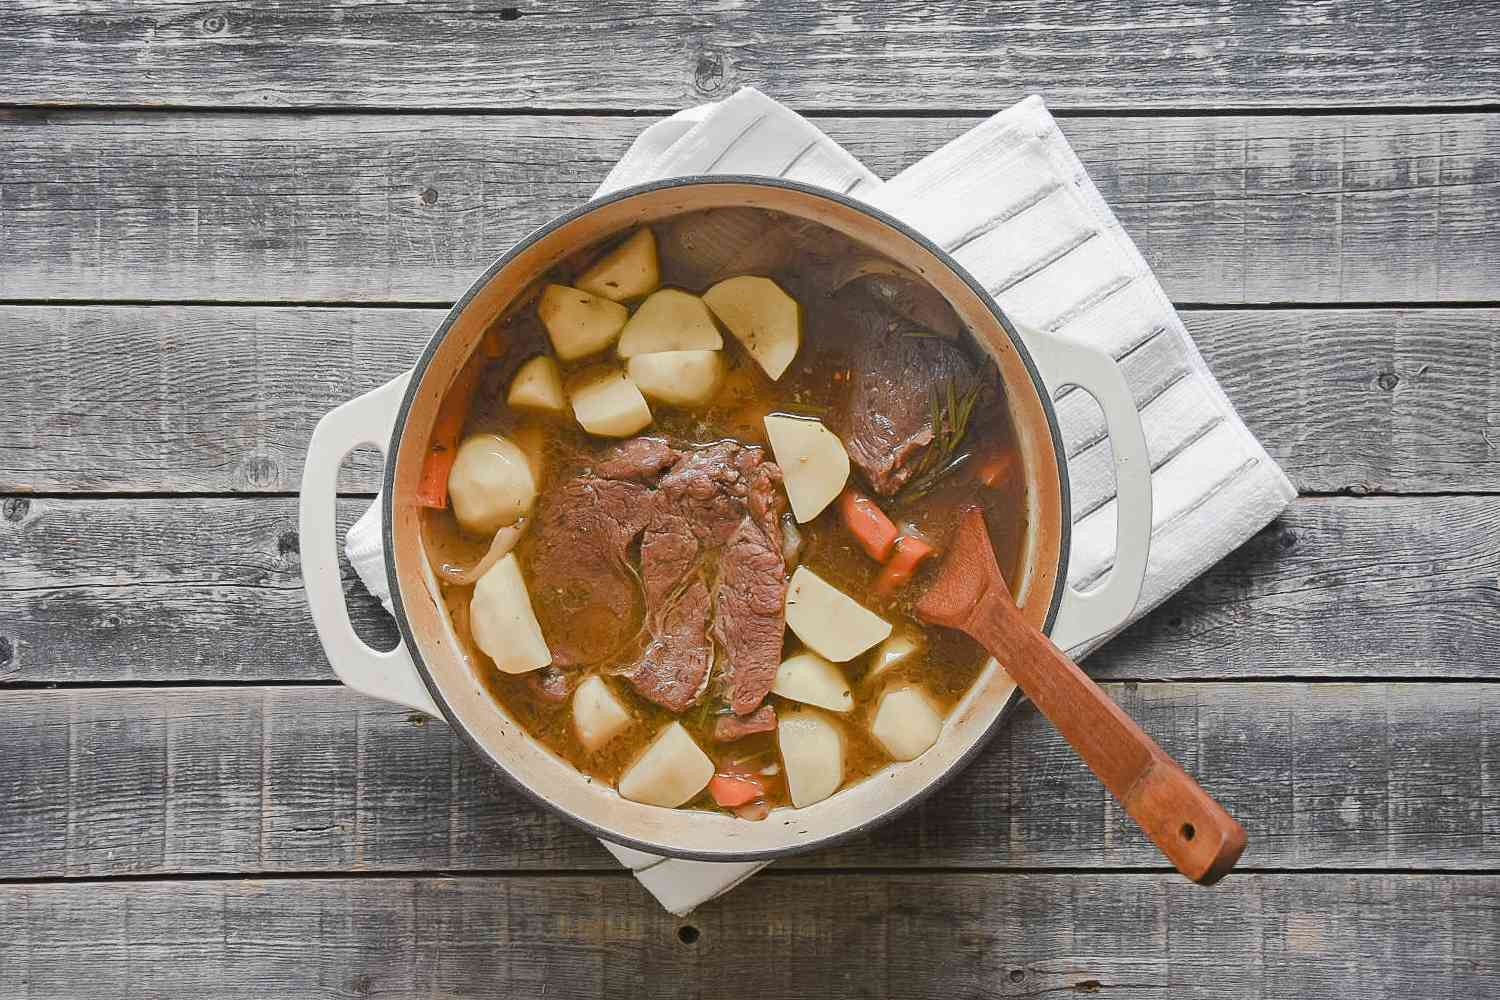 Pot roast with potatoes in a large white pot, with a wooden spoon